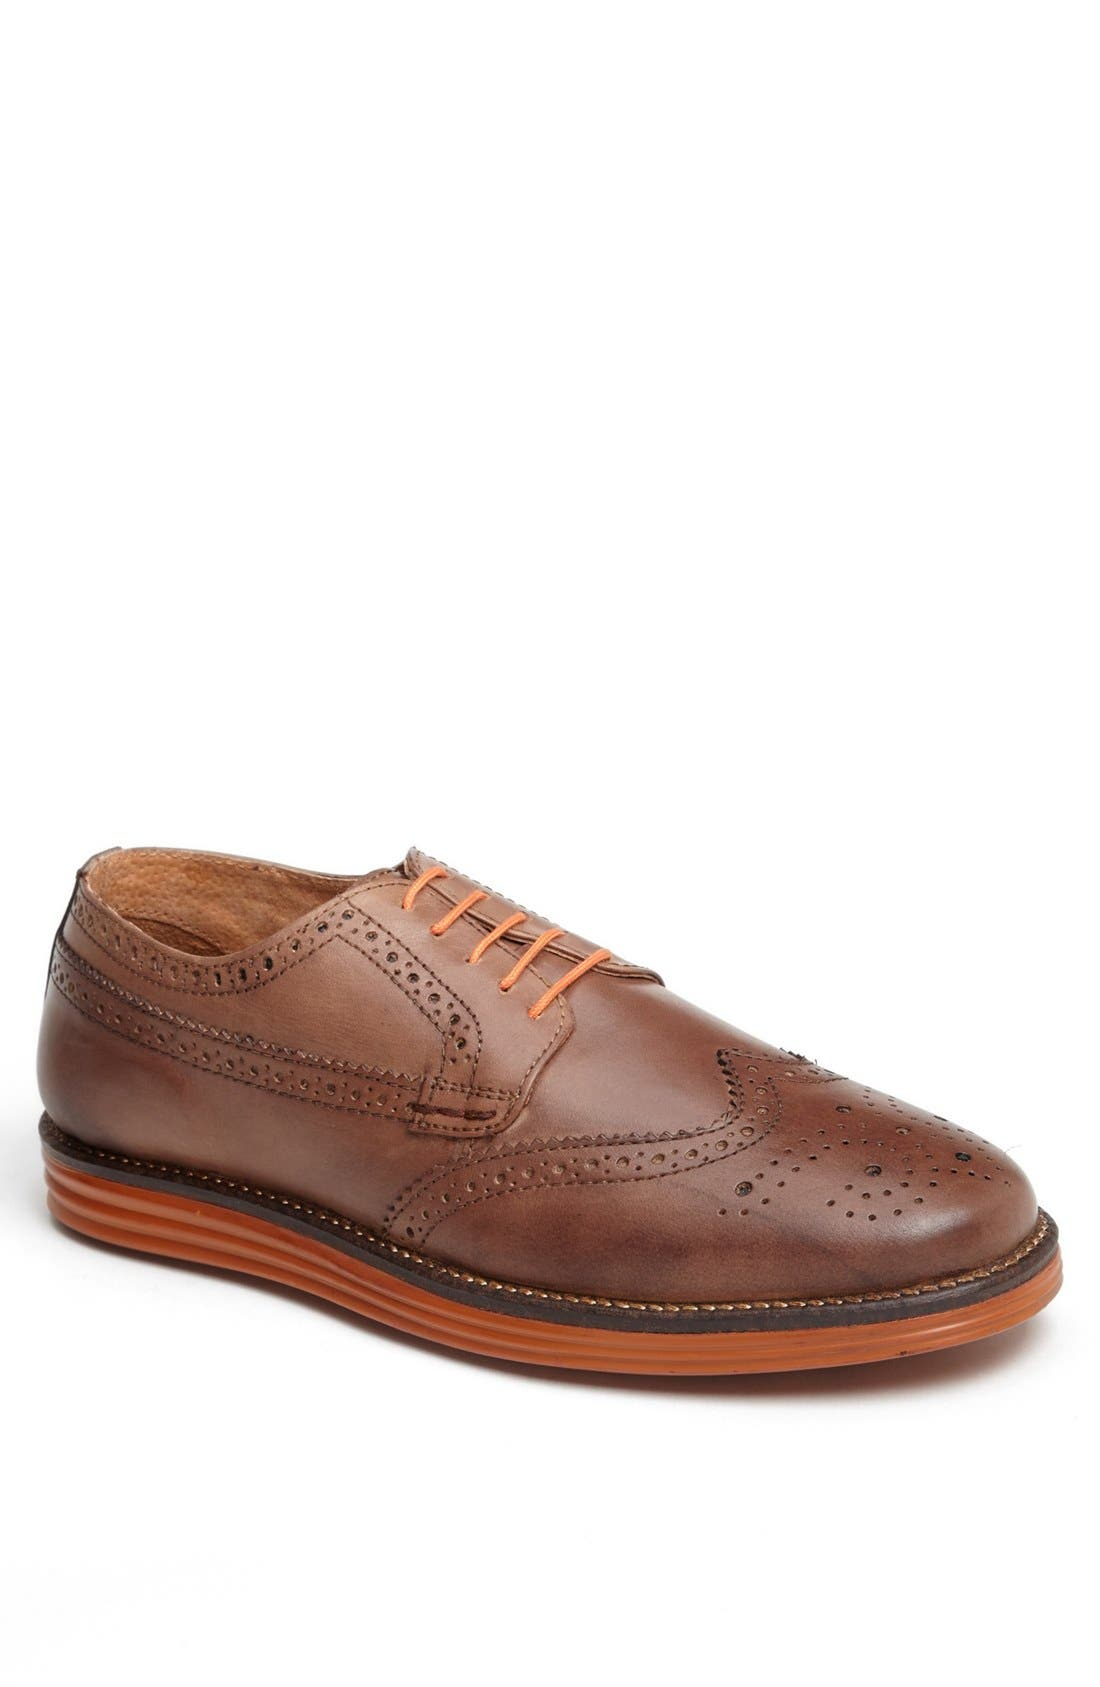 Alternate Image 1 Selected - Ben Sherman 'Zito' Wingtip (Men)